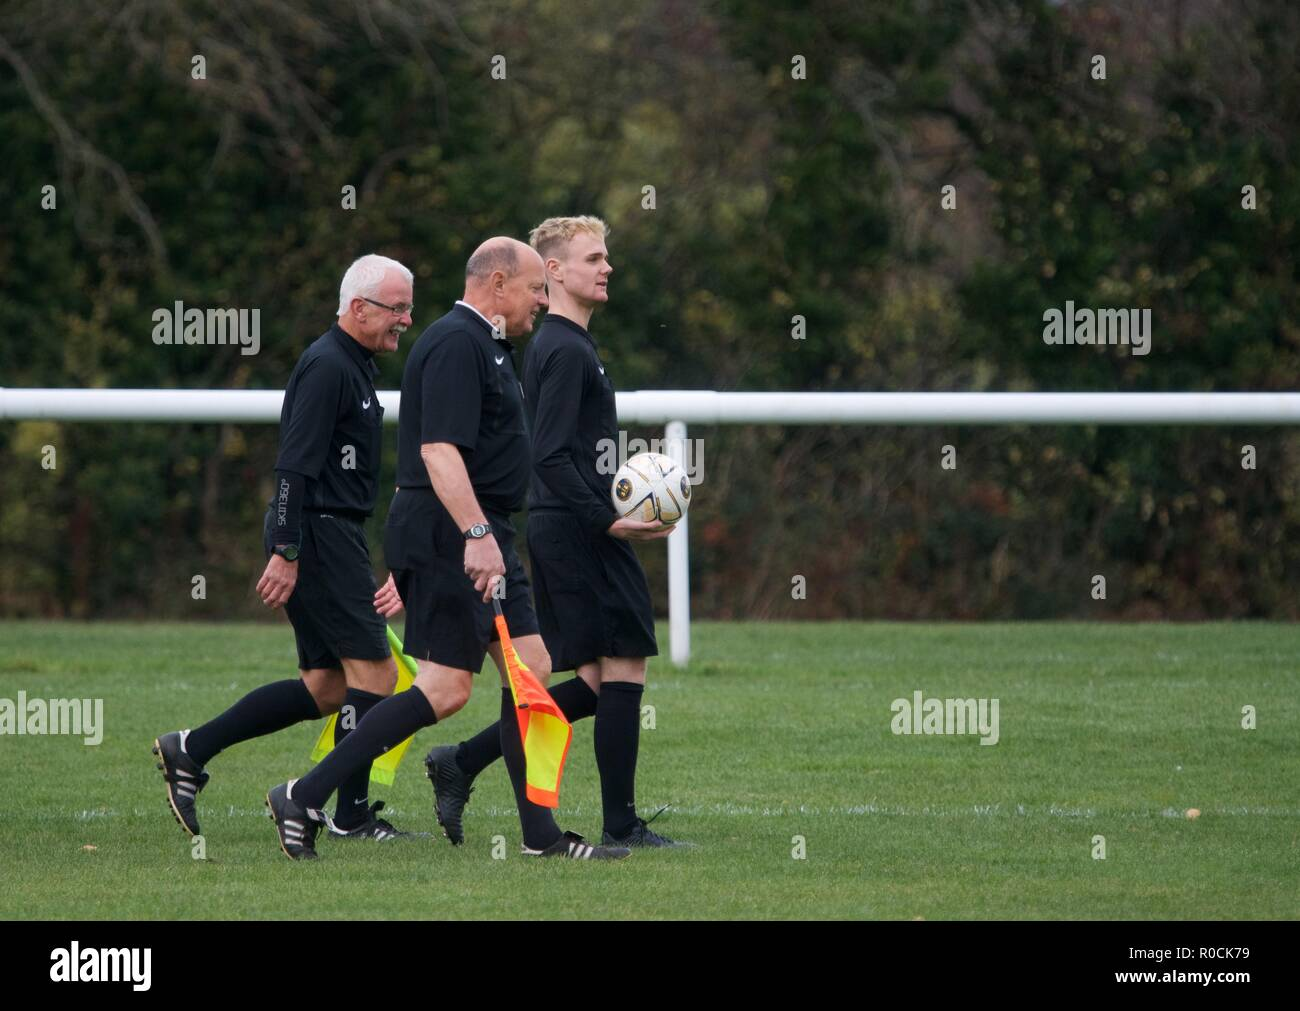 The referee and his assistants walk to the centre circle before  the start of an amateur football match between Whaley Bridge Athletic and Malpas. - Stock Image